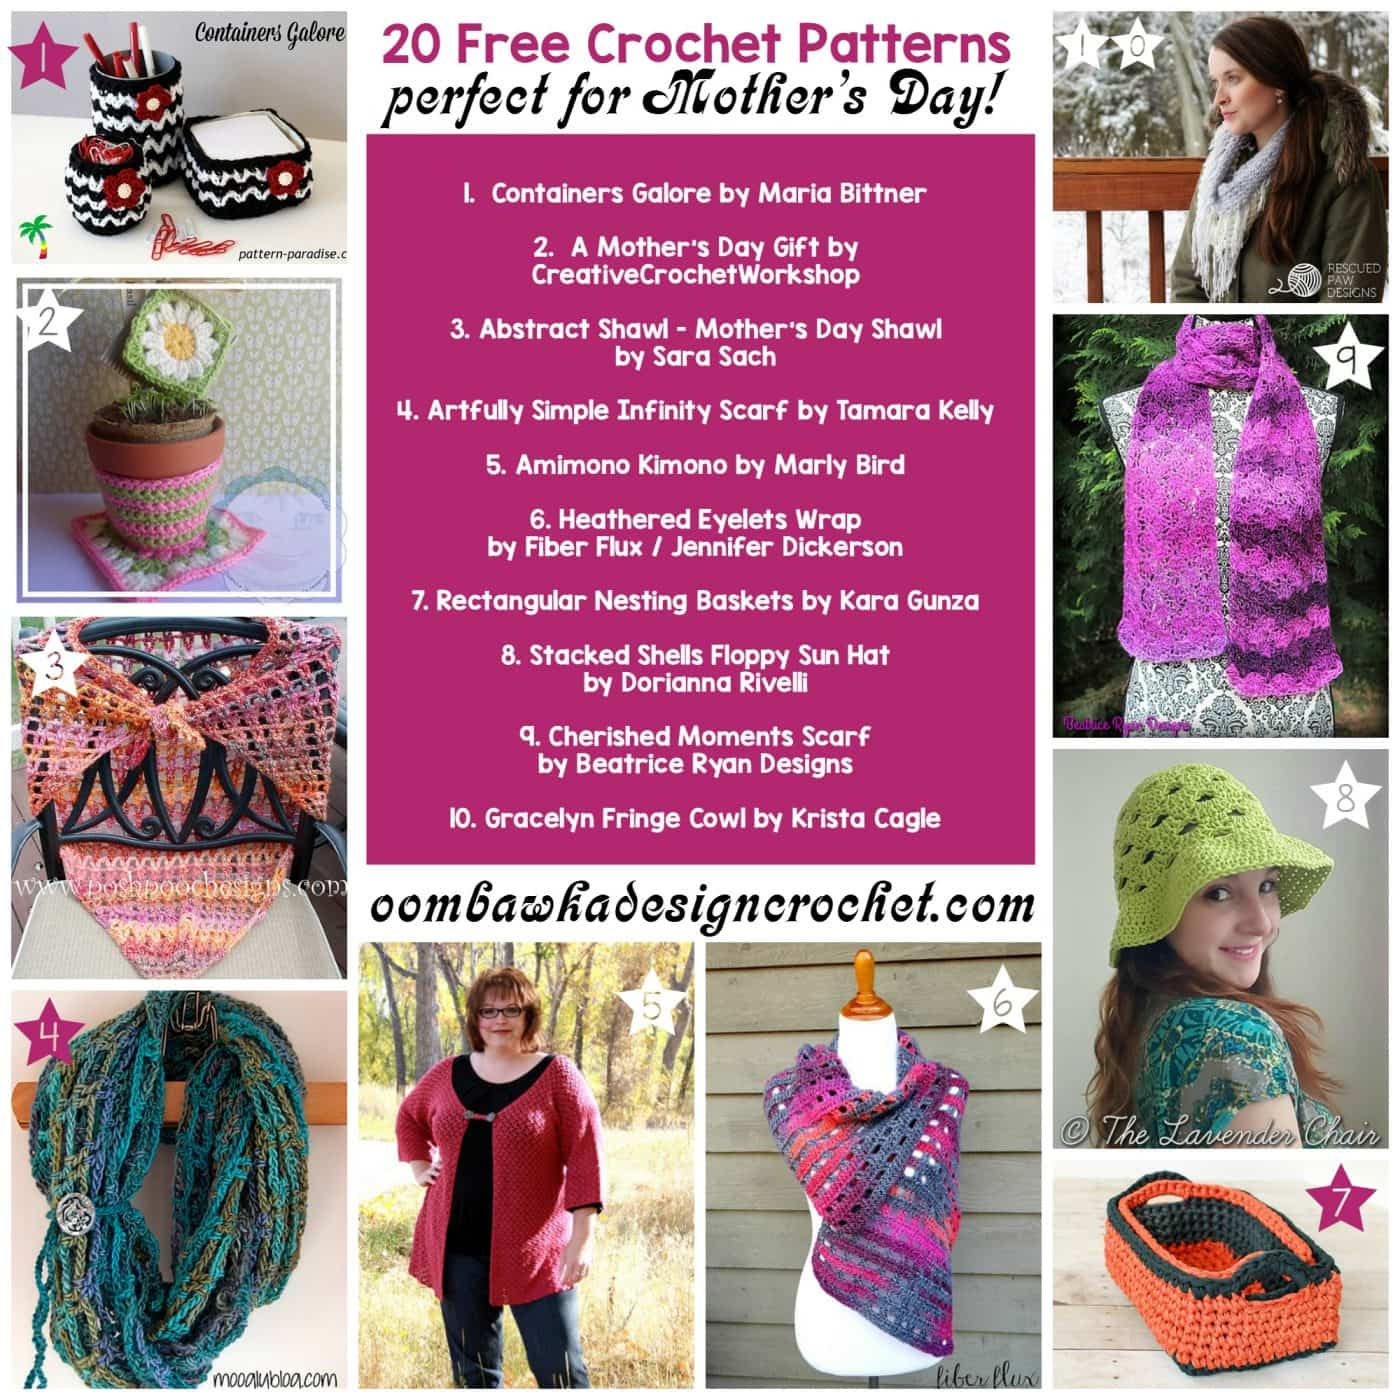 Crochet Patterns For Mother s Day : 20 Free Crochet Patterns Perfect for Mothers Day ...